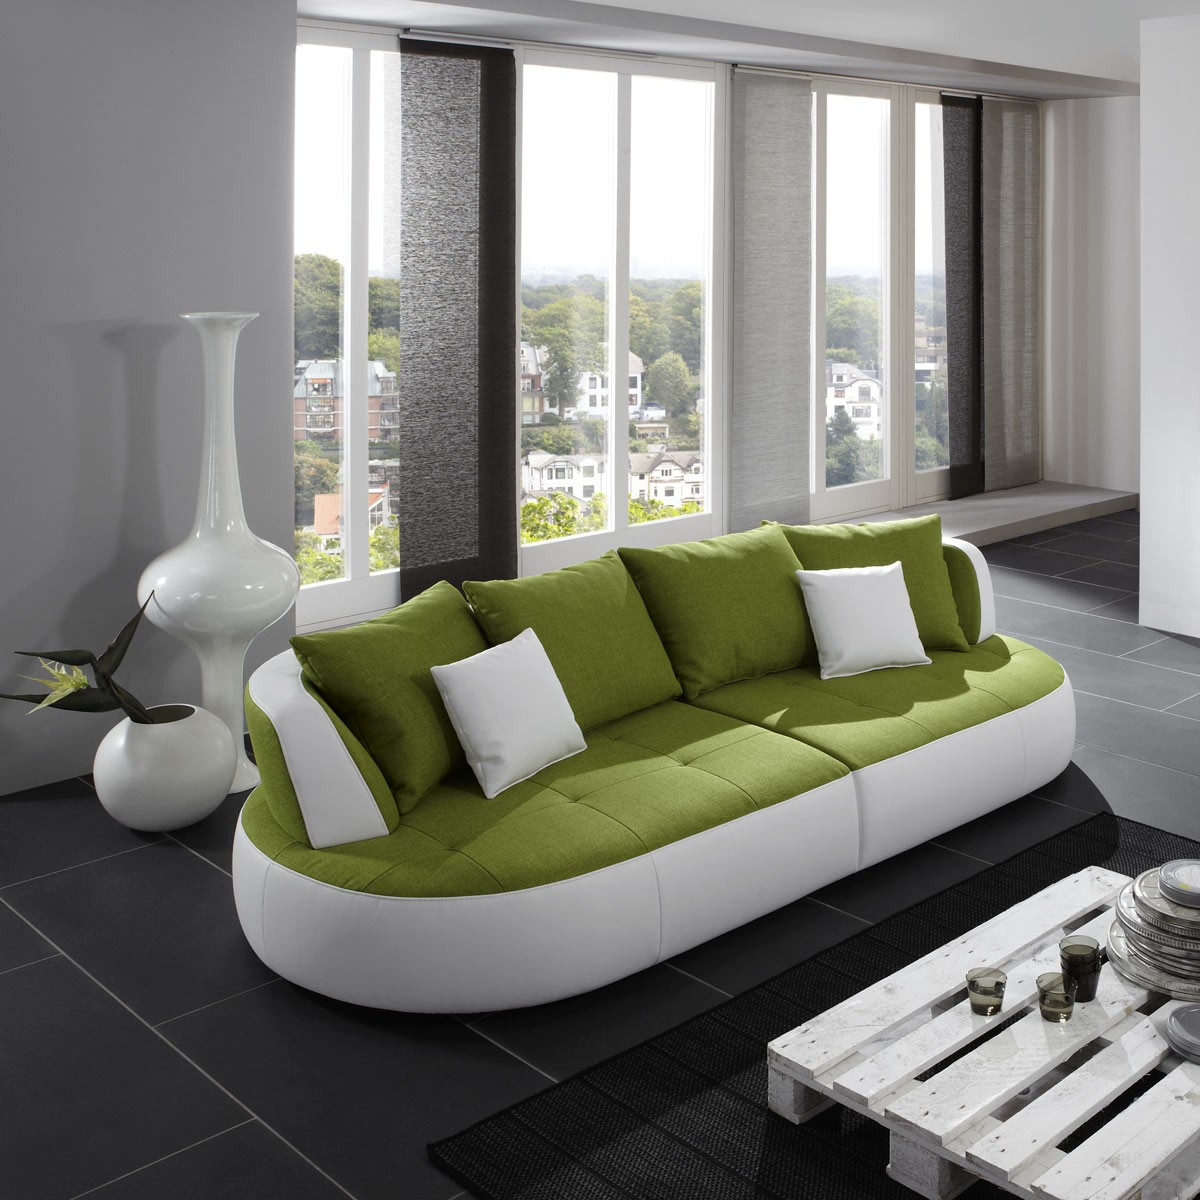 ultrasofa bigsofa xxl sofa megasofa kunstleder und stoff in wei gr n ebay. Black Bedroom Furniture Sets. Home Design Ideas